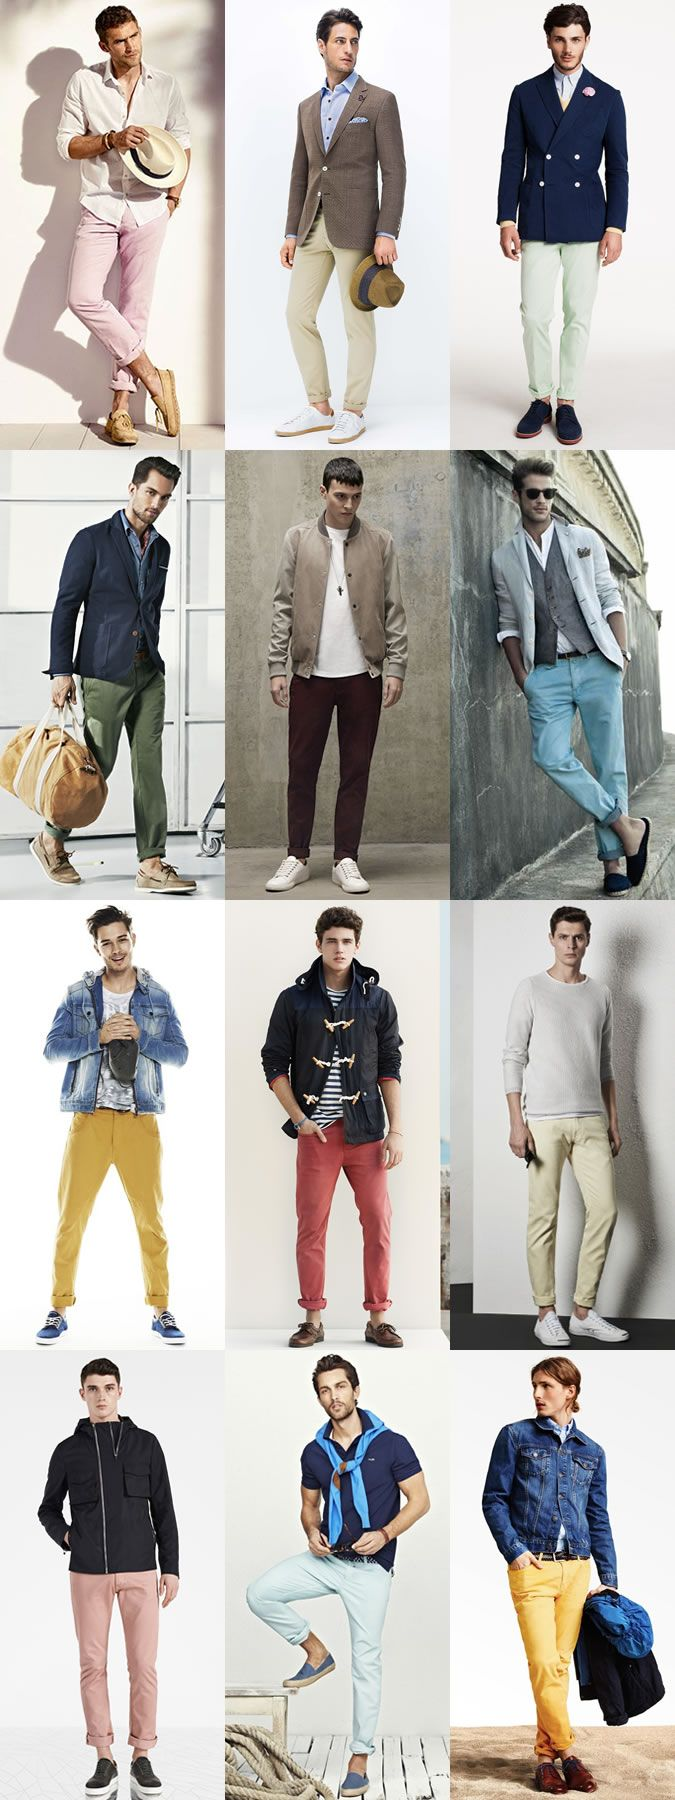 2015 Spring/Summer Men's Chinos Guide: Pastels Colours Lookbook Inspiration